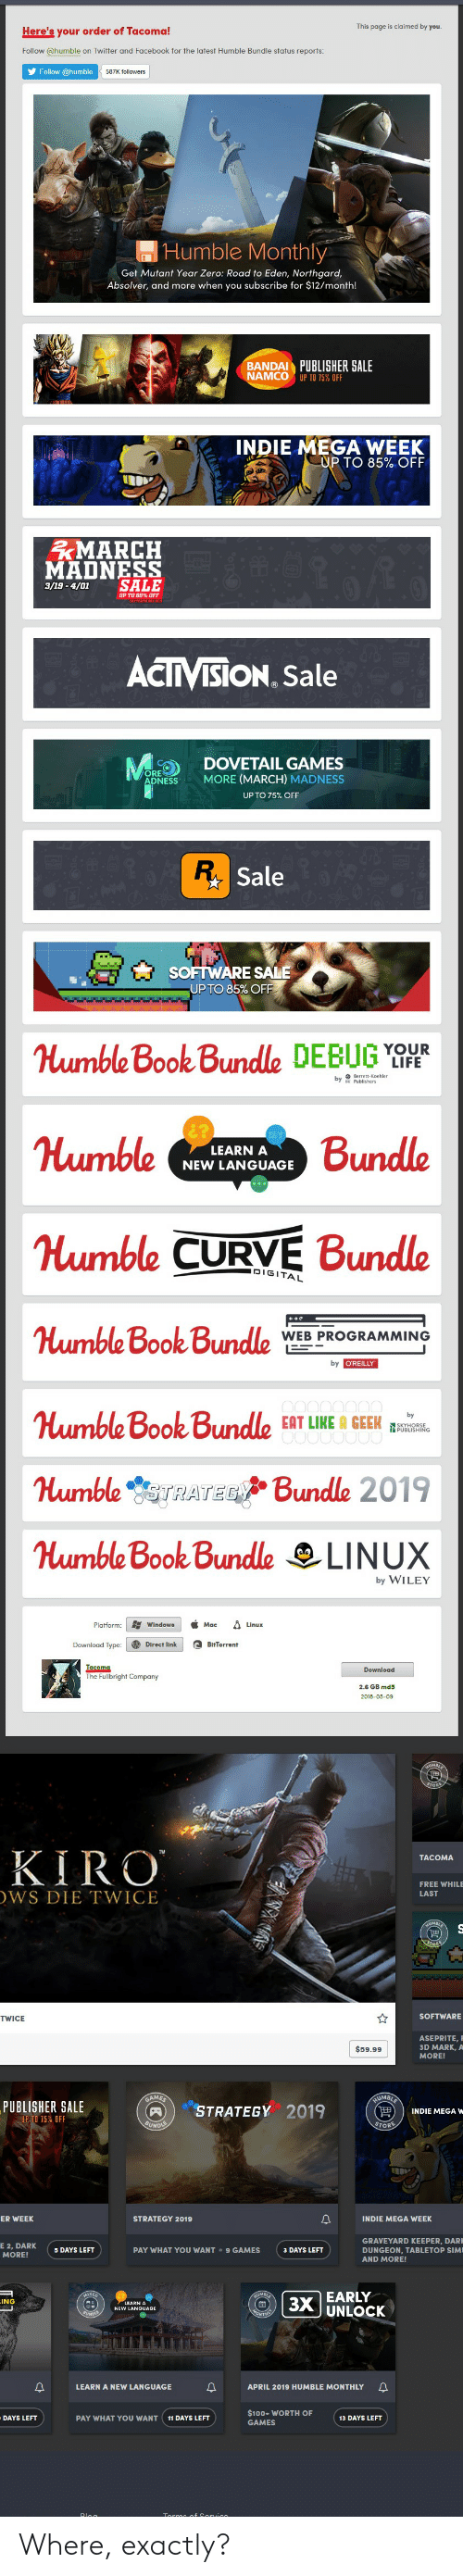 Curving, Life, and March Madness: This page icioned by  Here's your order of Tacoma  Tollow Ghumble on Twitter and Tacebook for the latest umble Dundle status reports  Folowhub  Humble Monthly  Get Mutant Year Zero: Road to Eden, Northgard,  Absolver, and more when you subscribe for $12/month!  PUBLISHER SALE  INDIE MECA WEEK  TO 85% OFF  MARCH  MADNESS  3/19-4/01 SALE  ACT ISİON Sale  DOVETAIL GAMES  MORE (MARCH) MADNESS  UP TO 75% OFF  R.  Sale  SOFTWARE SALE  UP TO 85% OFF  Humble Book Bunde DEBUG Y  YOUR  LIFE  mbe Bundle  Humble CURVE Bundle  umbe Book Bundle  Humble Book Bundle SIT LINE  Humble sTRATEBundle 2019  LEARN A  NEW LANGUAGE  AL  WEB PROGRAMMING  by WILEY  Fulbright Company  KIRO  FREE WHILE  WS DIE TWICE  ASEPRITE,  D MARK,  PUBLISHER SALE  STRATEGY 2019  D KEEPER, DAR  E 2, DARK DAYSLEFT  AND MORE  | 3x |UNLOCK  EARLY  N A NEW LANGUAGE  APRIL 2019 HUMBLE MONTHLY Where, exactly?